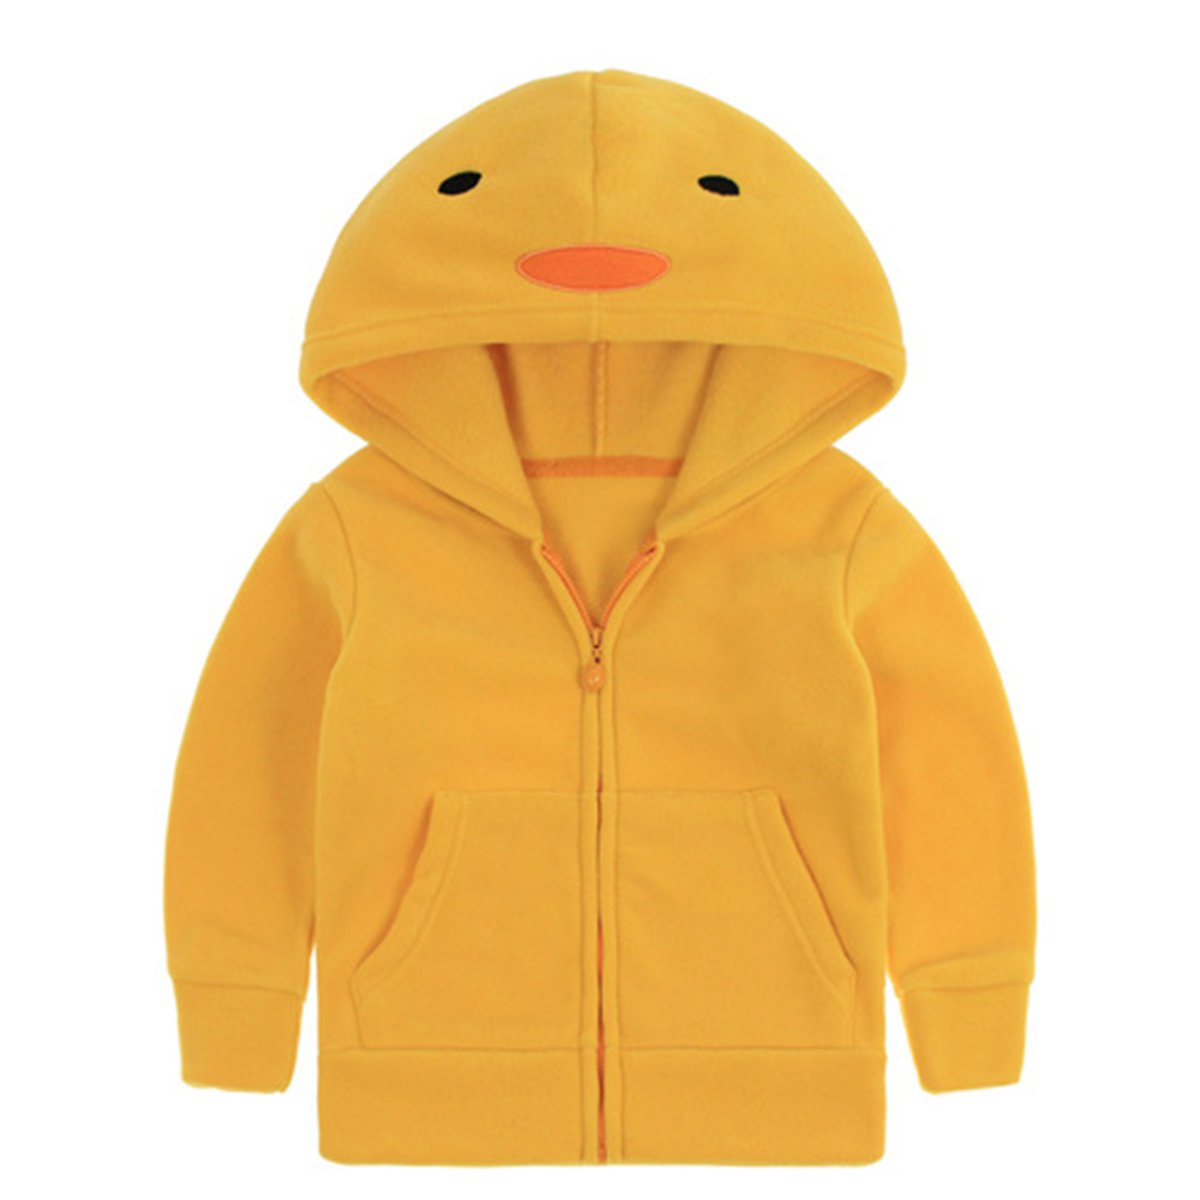 Kanodan Spring Warm Fleece Hooded Jacket Animal Outwear Coats Little Boys/Girls